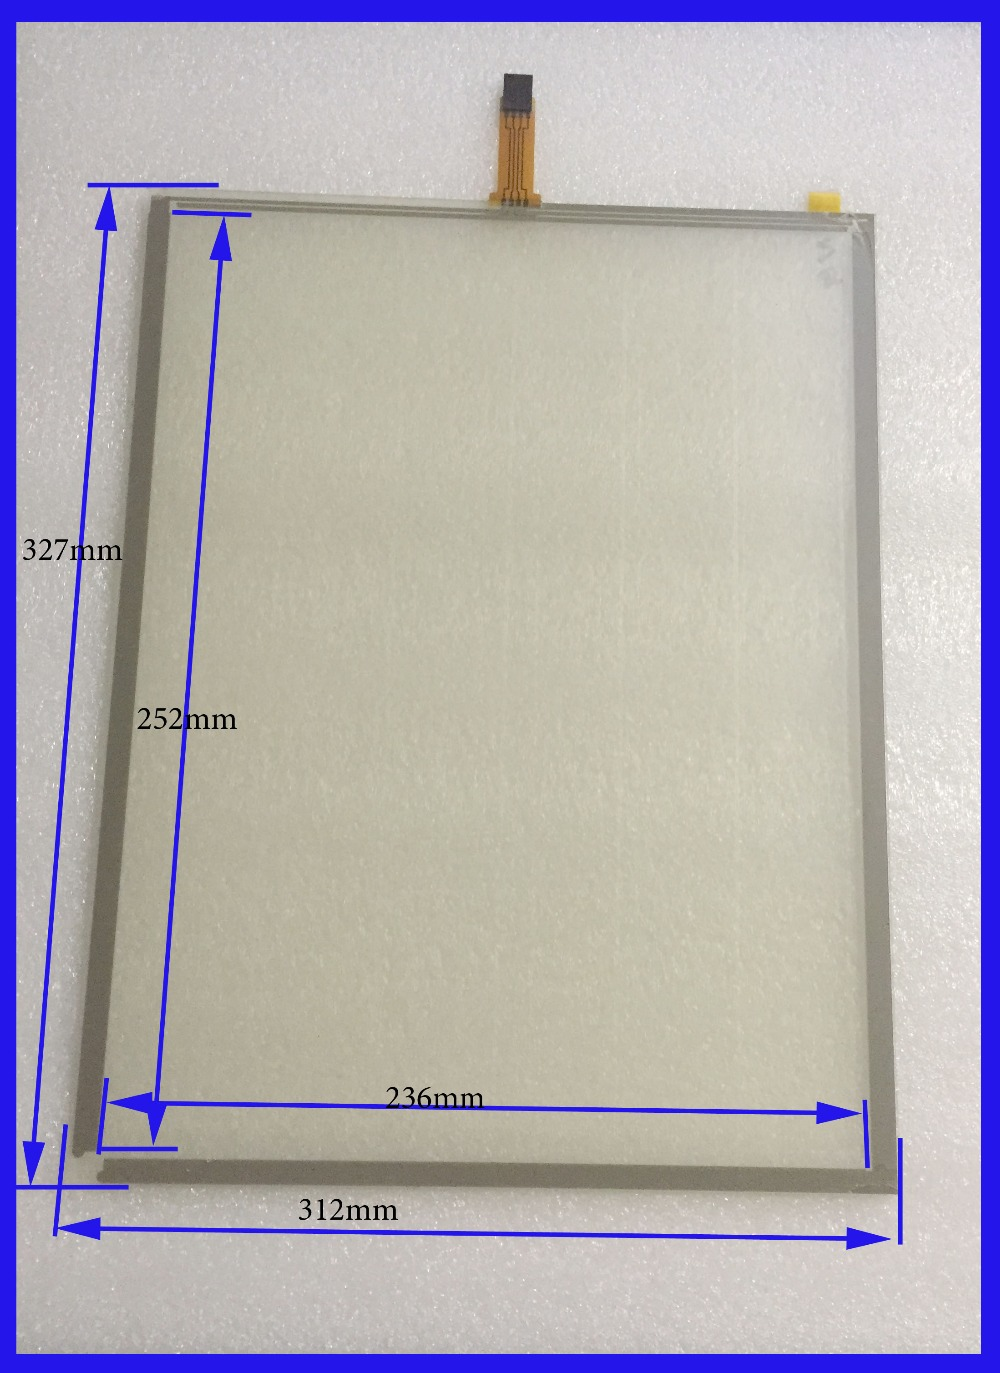 ZhiYuSun 327mm*252mm 14 Inch Touch Screen panels 4 wire resistive USB touch panel overlay kit  Free Shipping zhiyusun new 10 4 inch touch screen 239 189 for industry applications 239mm 189mm 8 lins 47f8104025 r13 commercial use